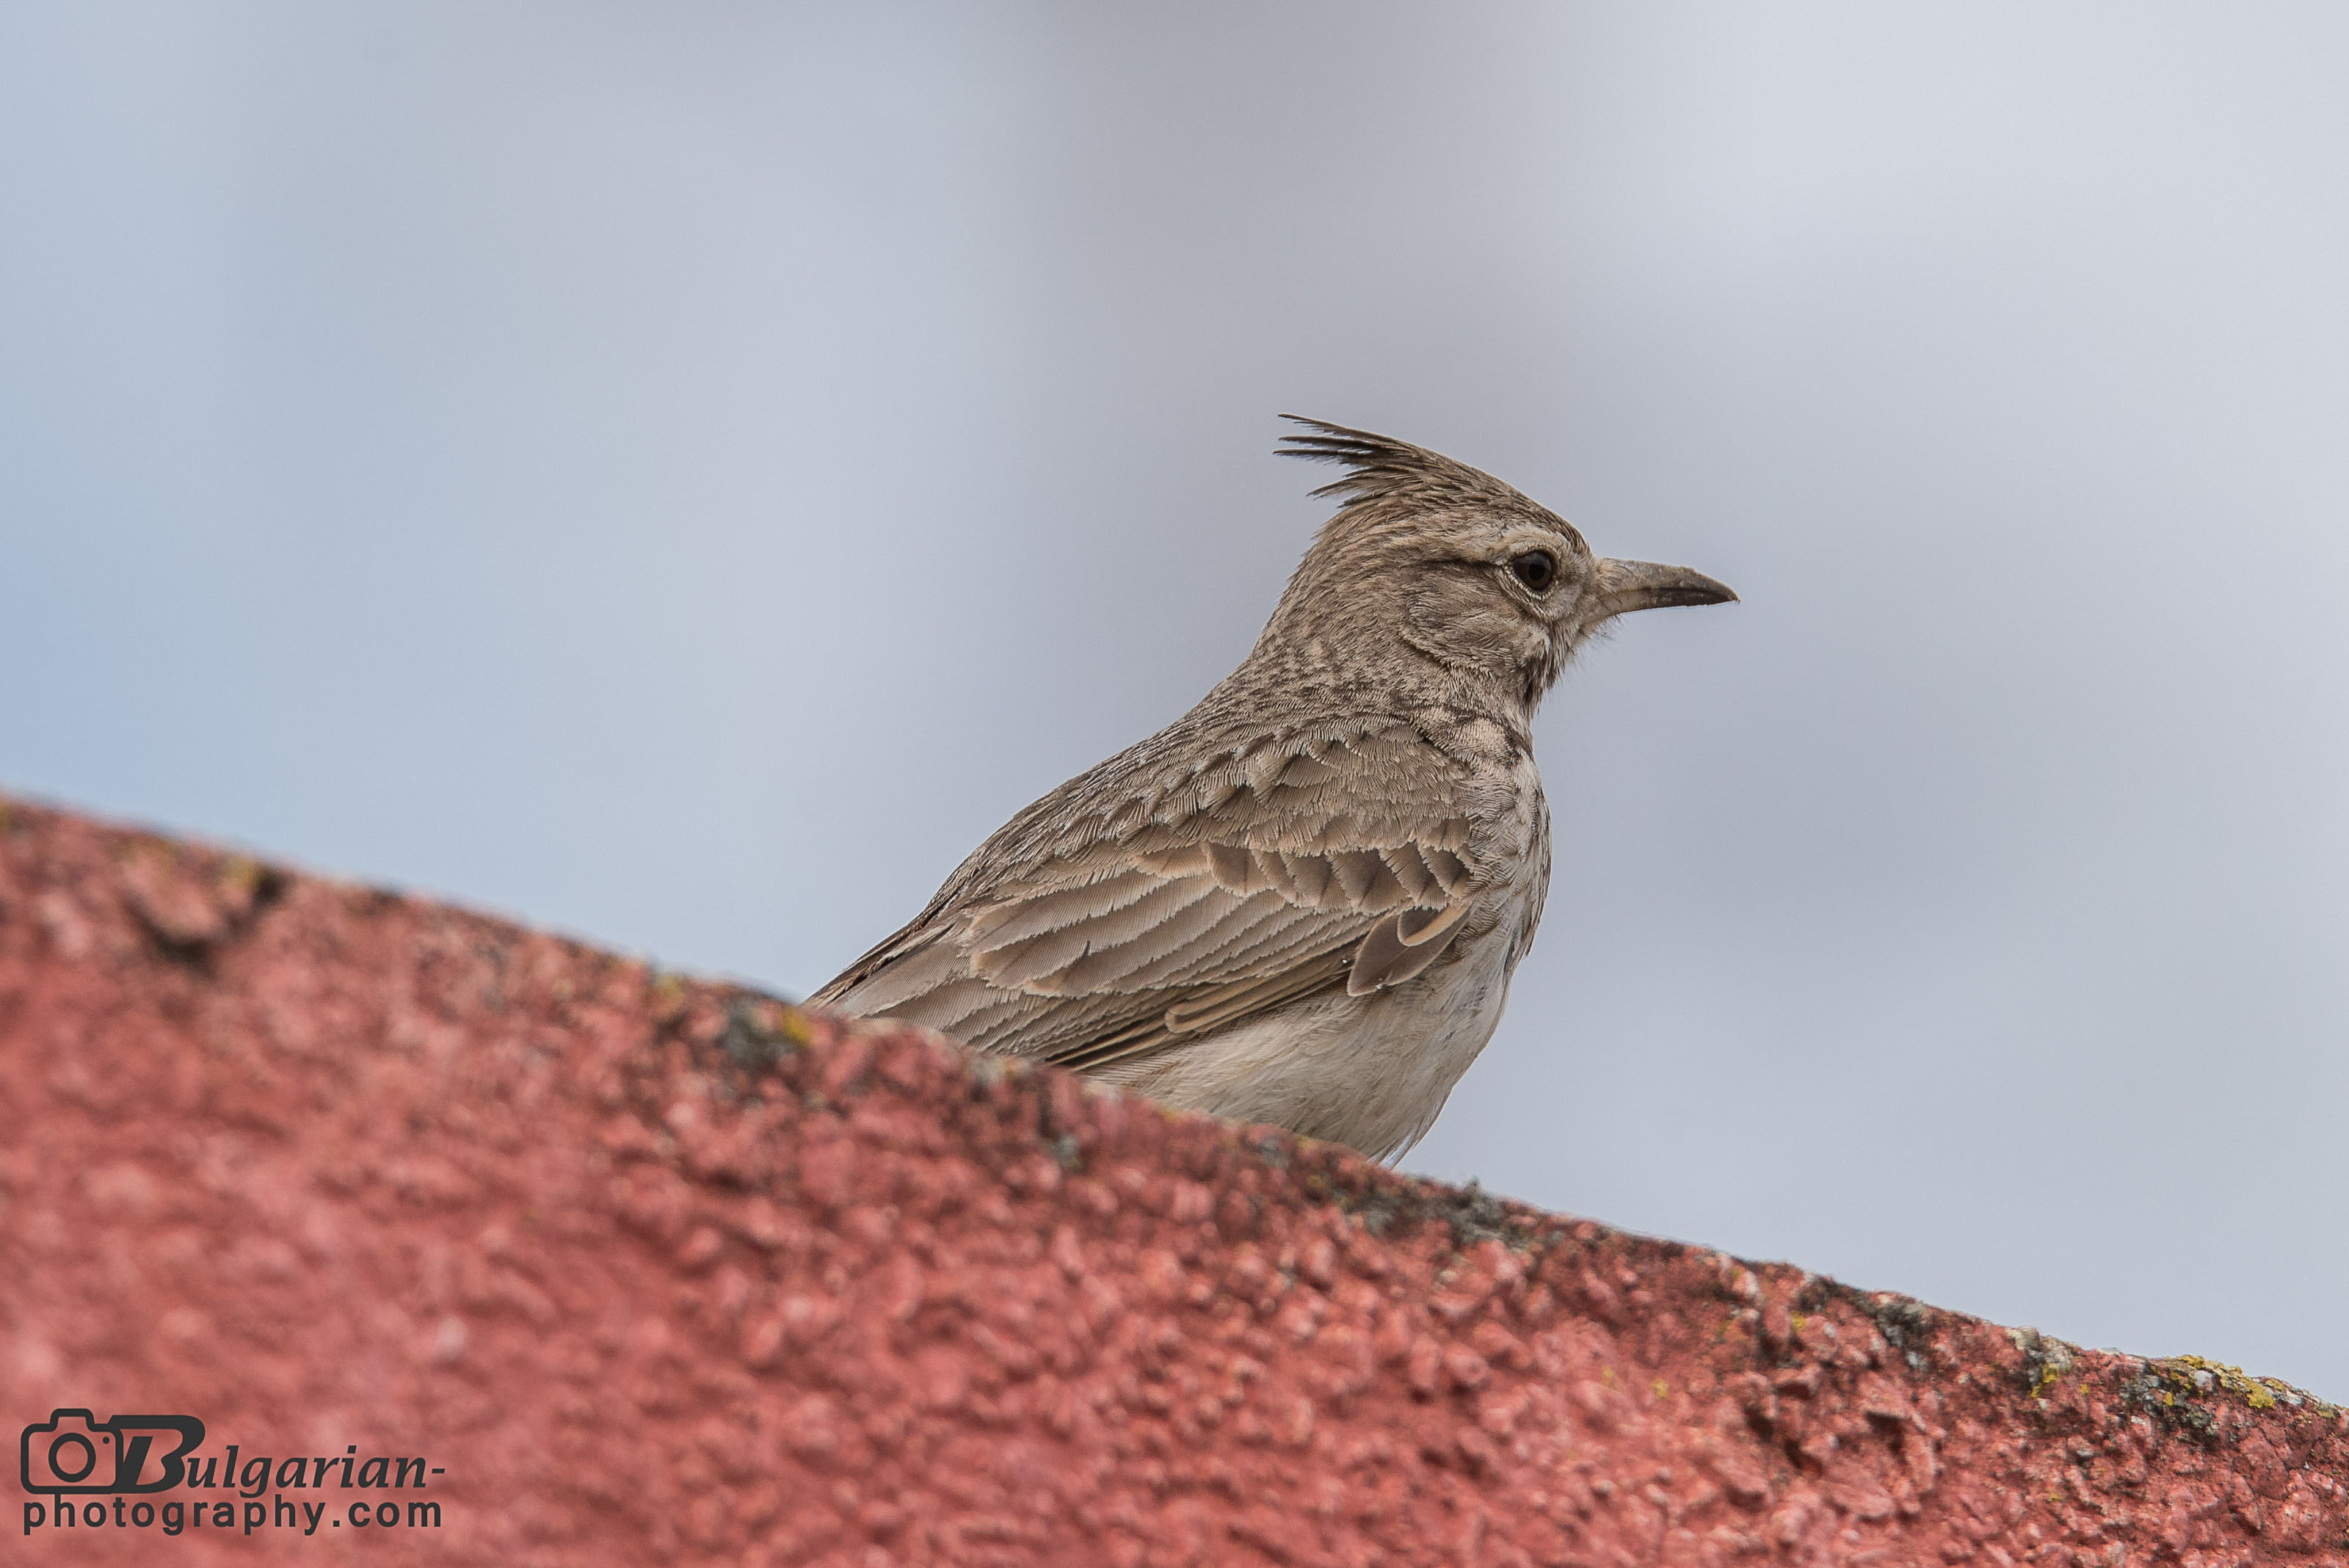 Crested Lark on roof